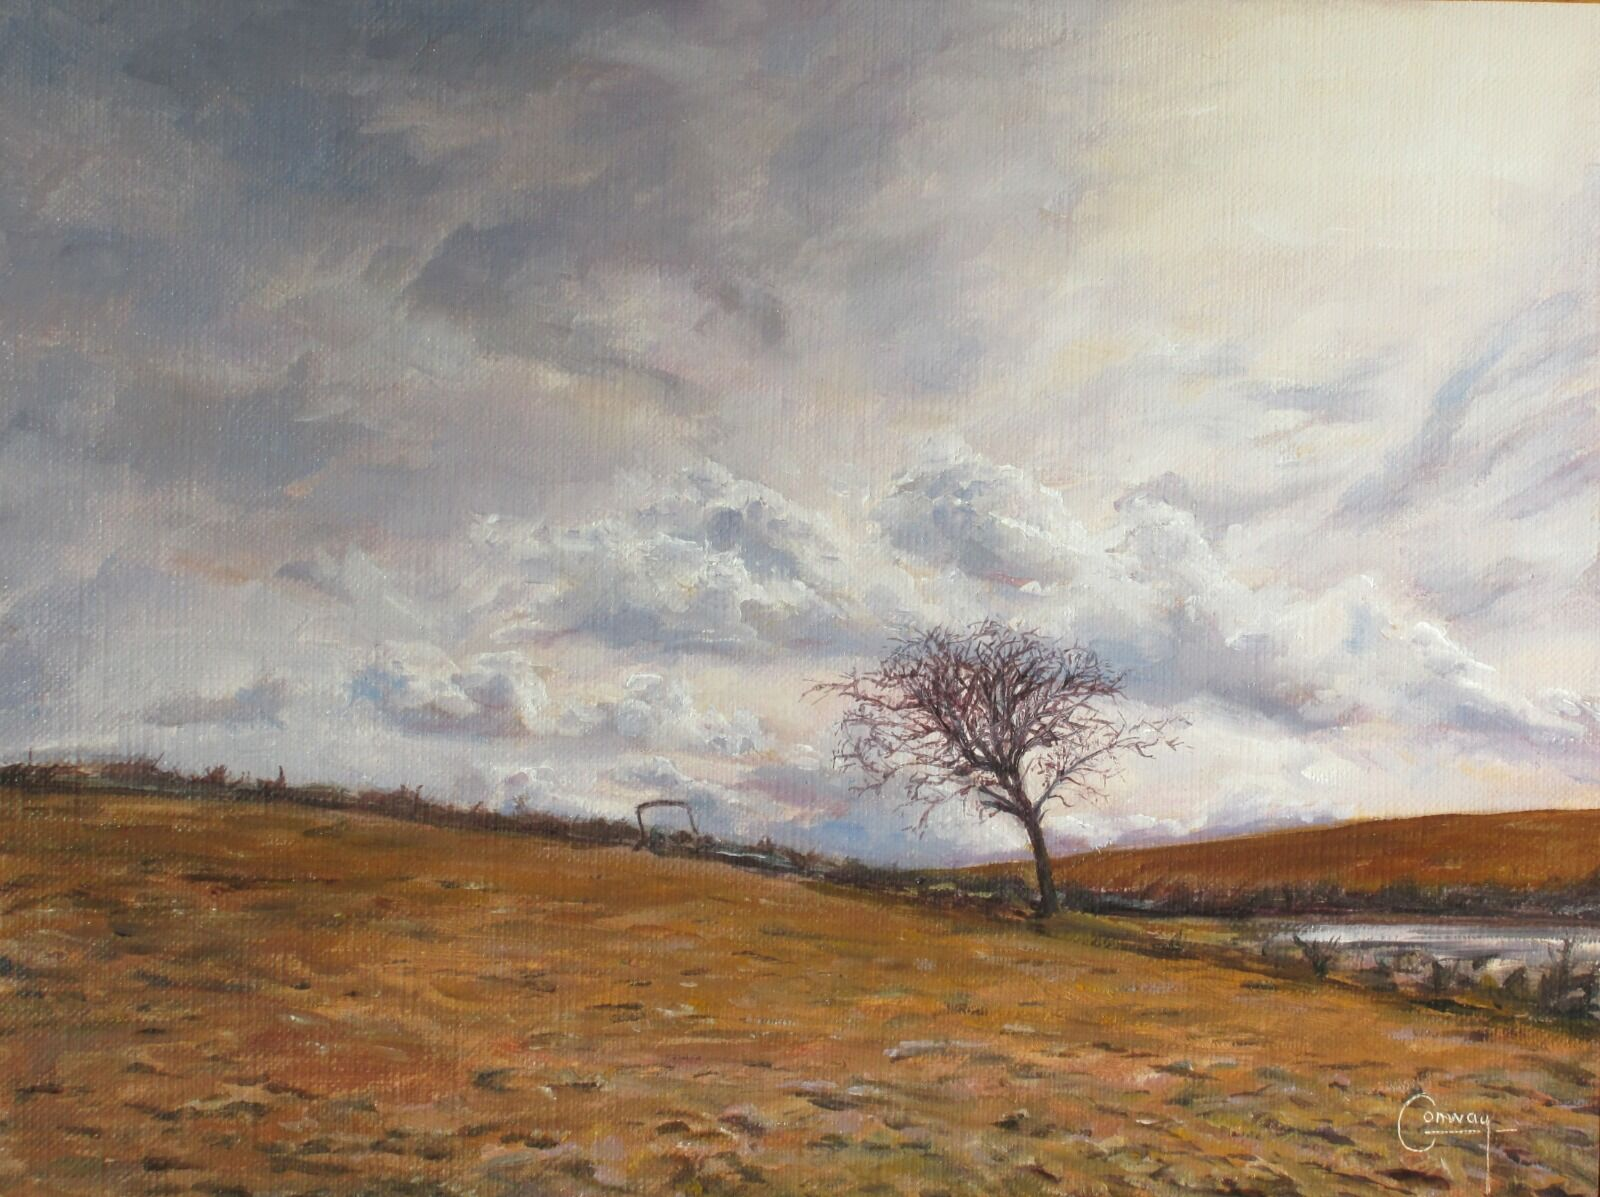 Painting of a thorn tree and abandoned farm machine on a hill top.